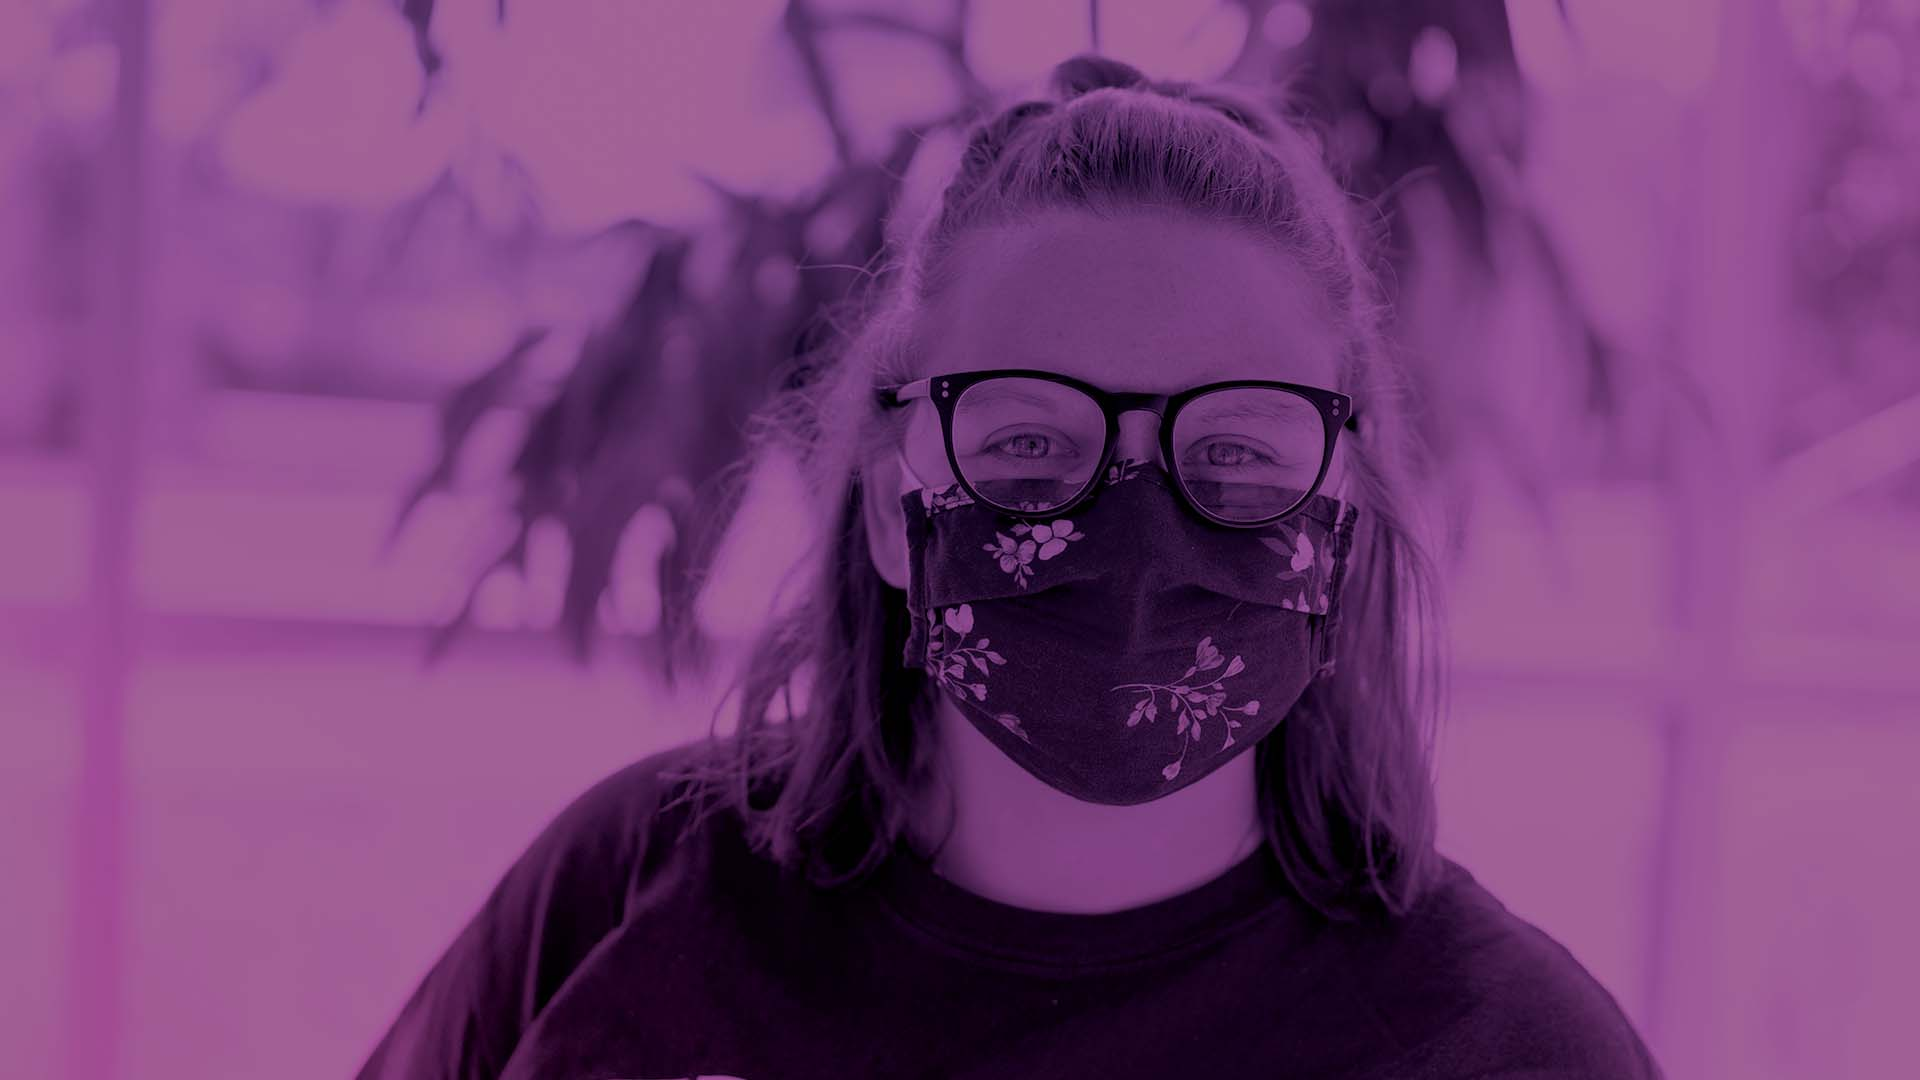 A person smiling with a mask on. There is a purple gradient overlay on them